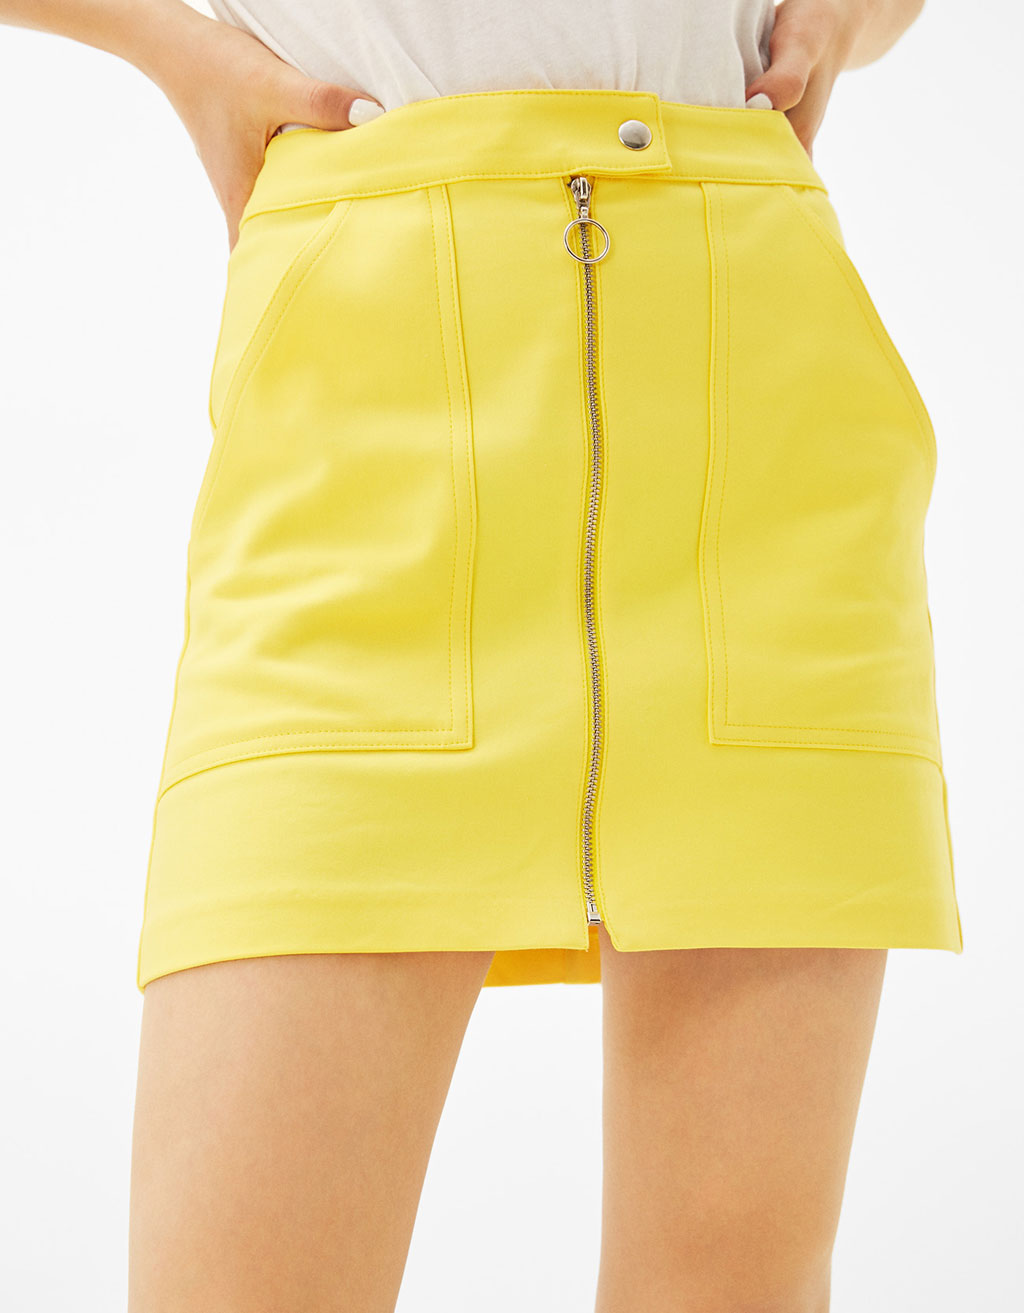 Short skirt with pockets and zips